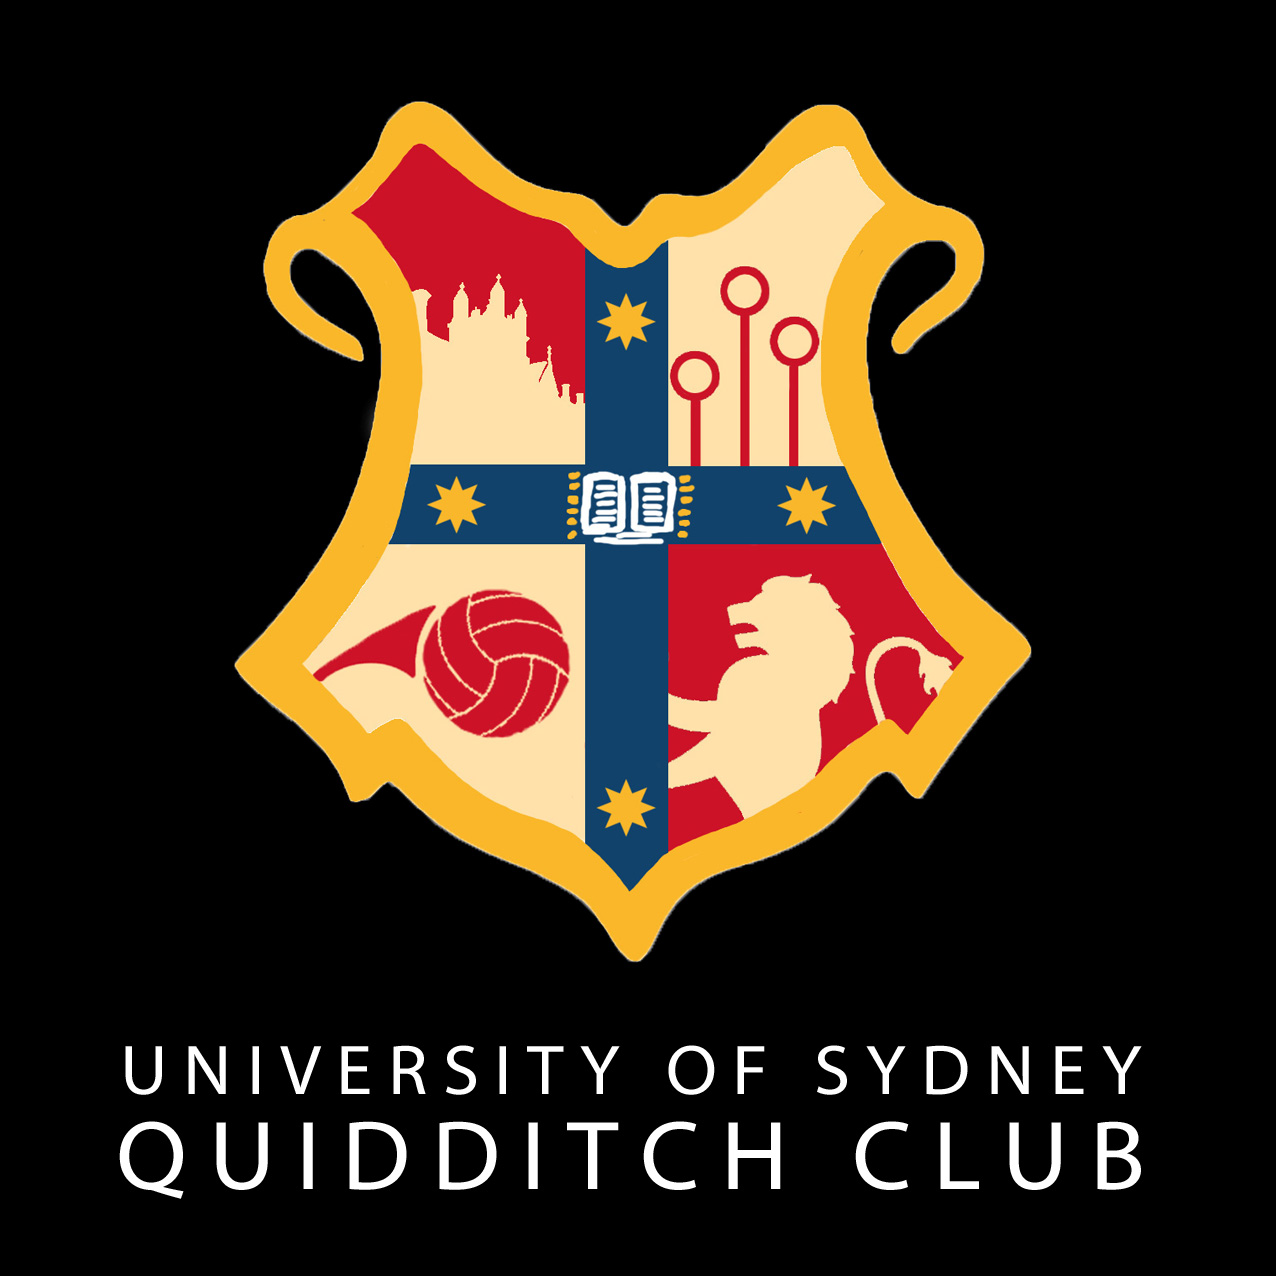 University of Sydney Quidditch Club